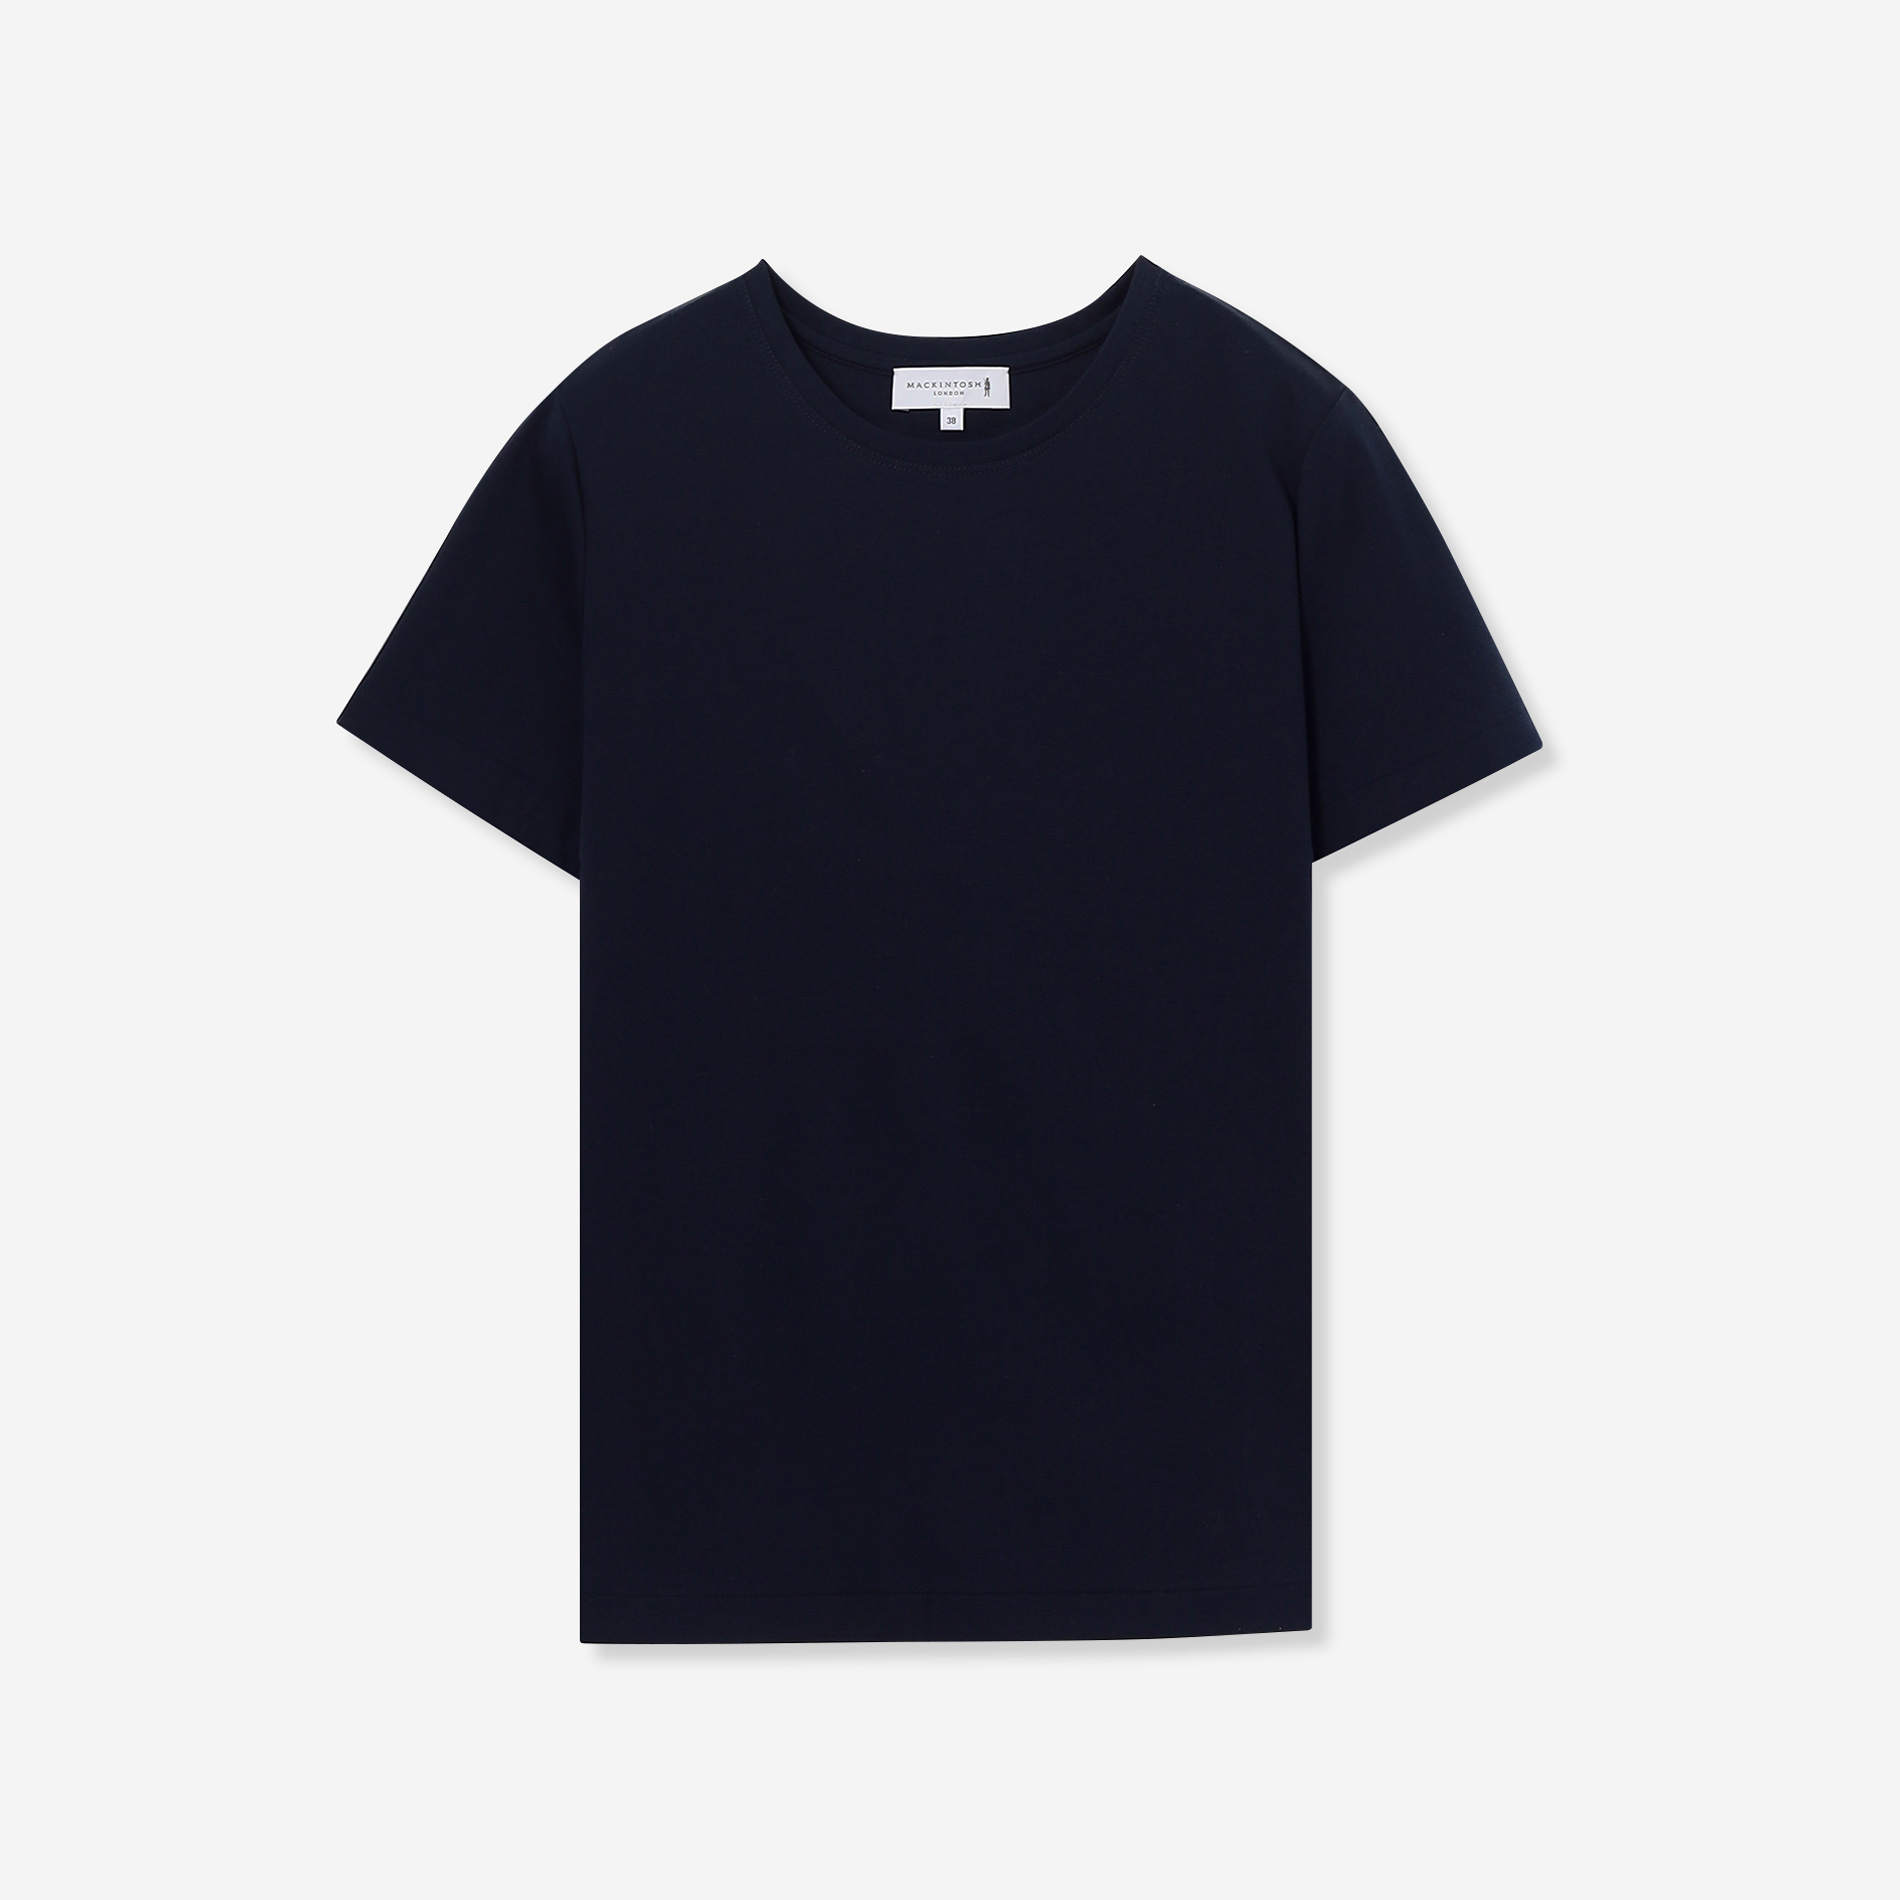 【The Essential Collection】スーピマコットンクルーネック半袖Tシャツ